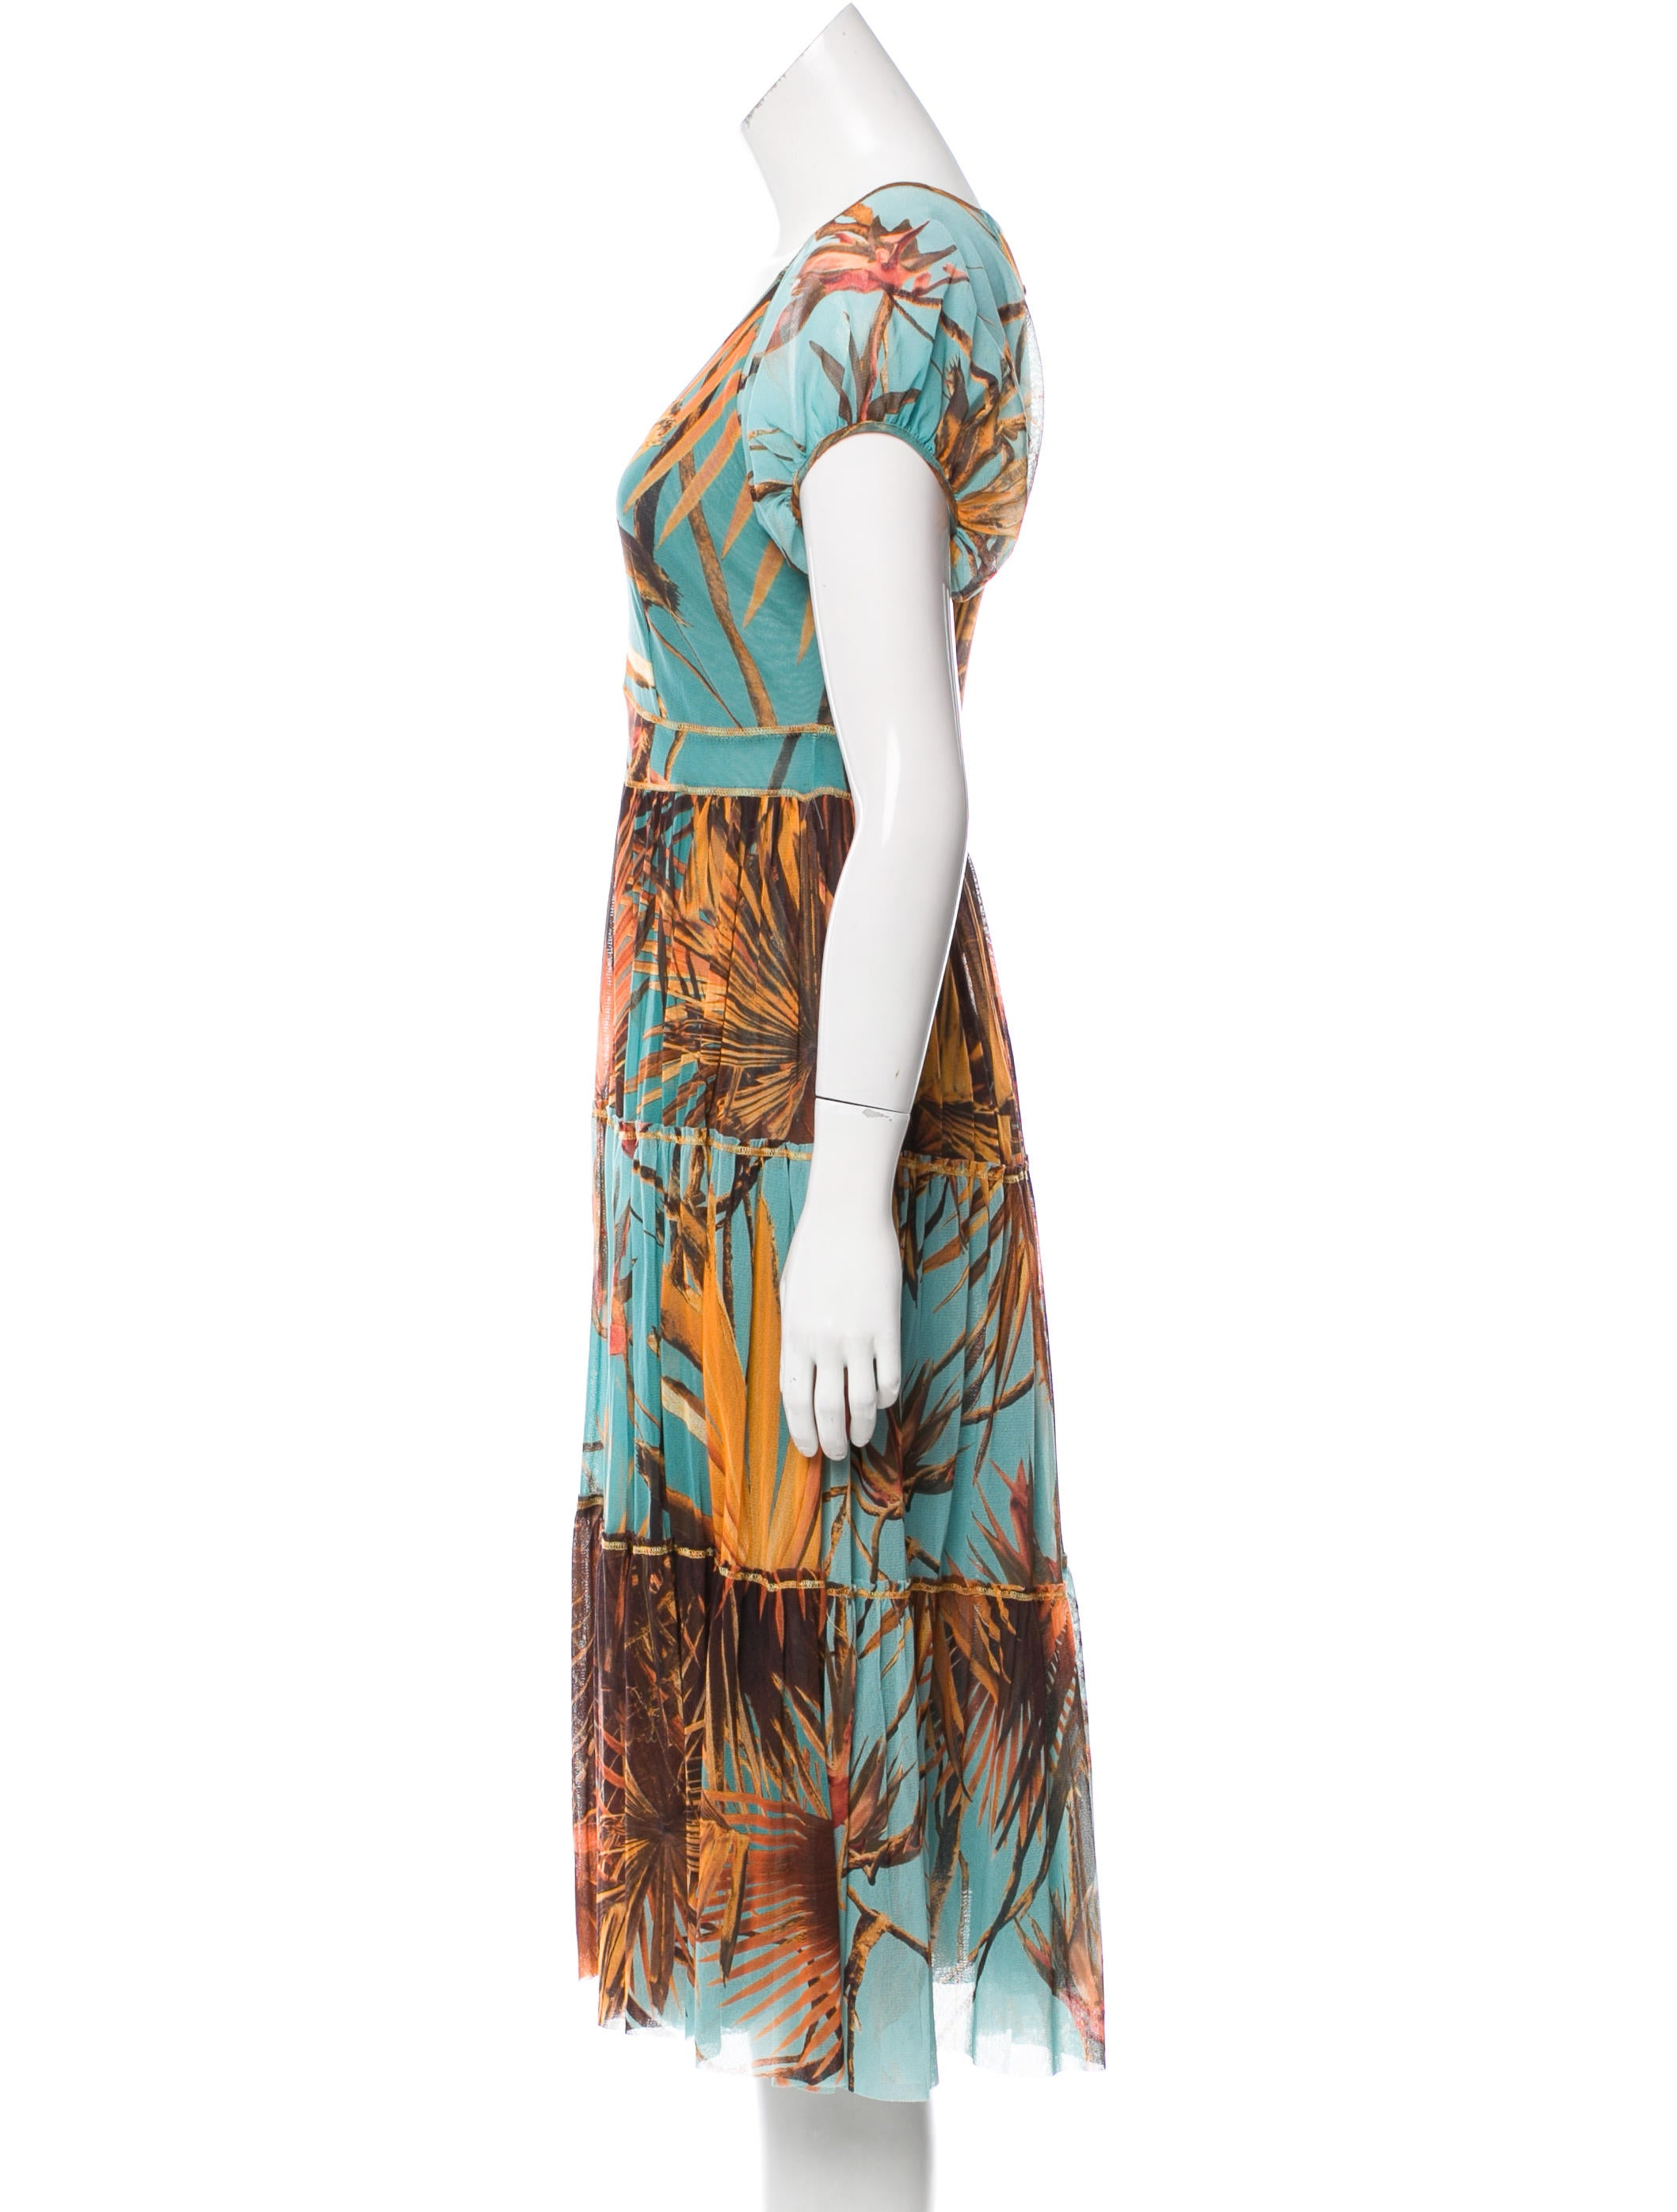 Jean paul gaultier soleil printed midi dress w tags for Jean paul gaultier clothing